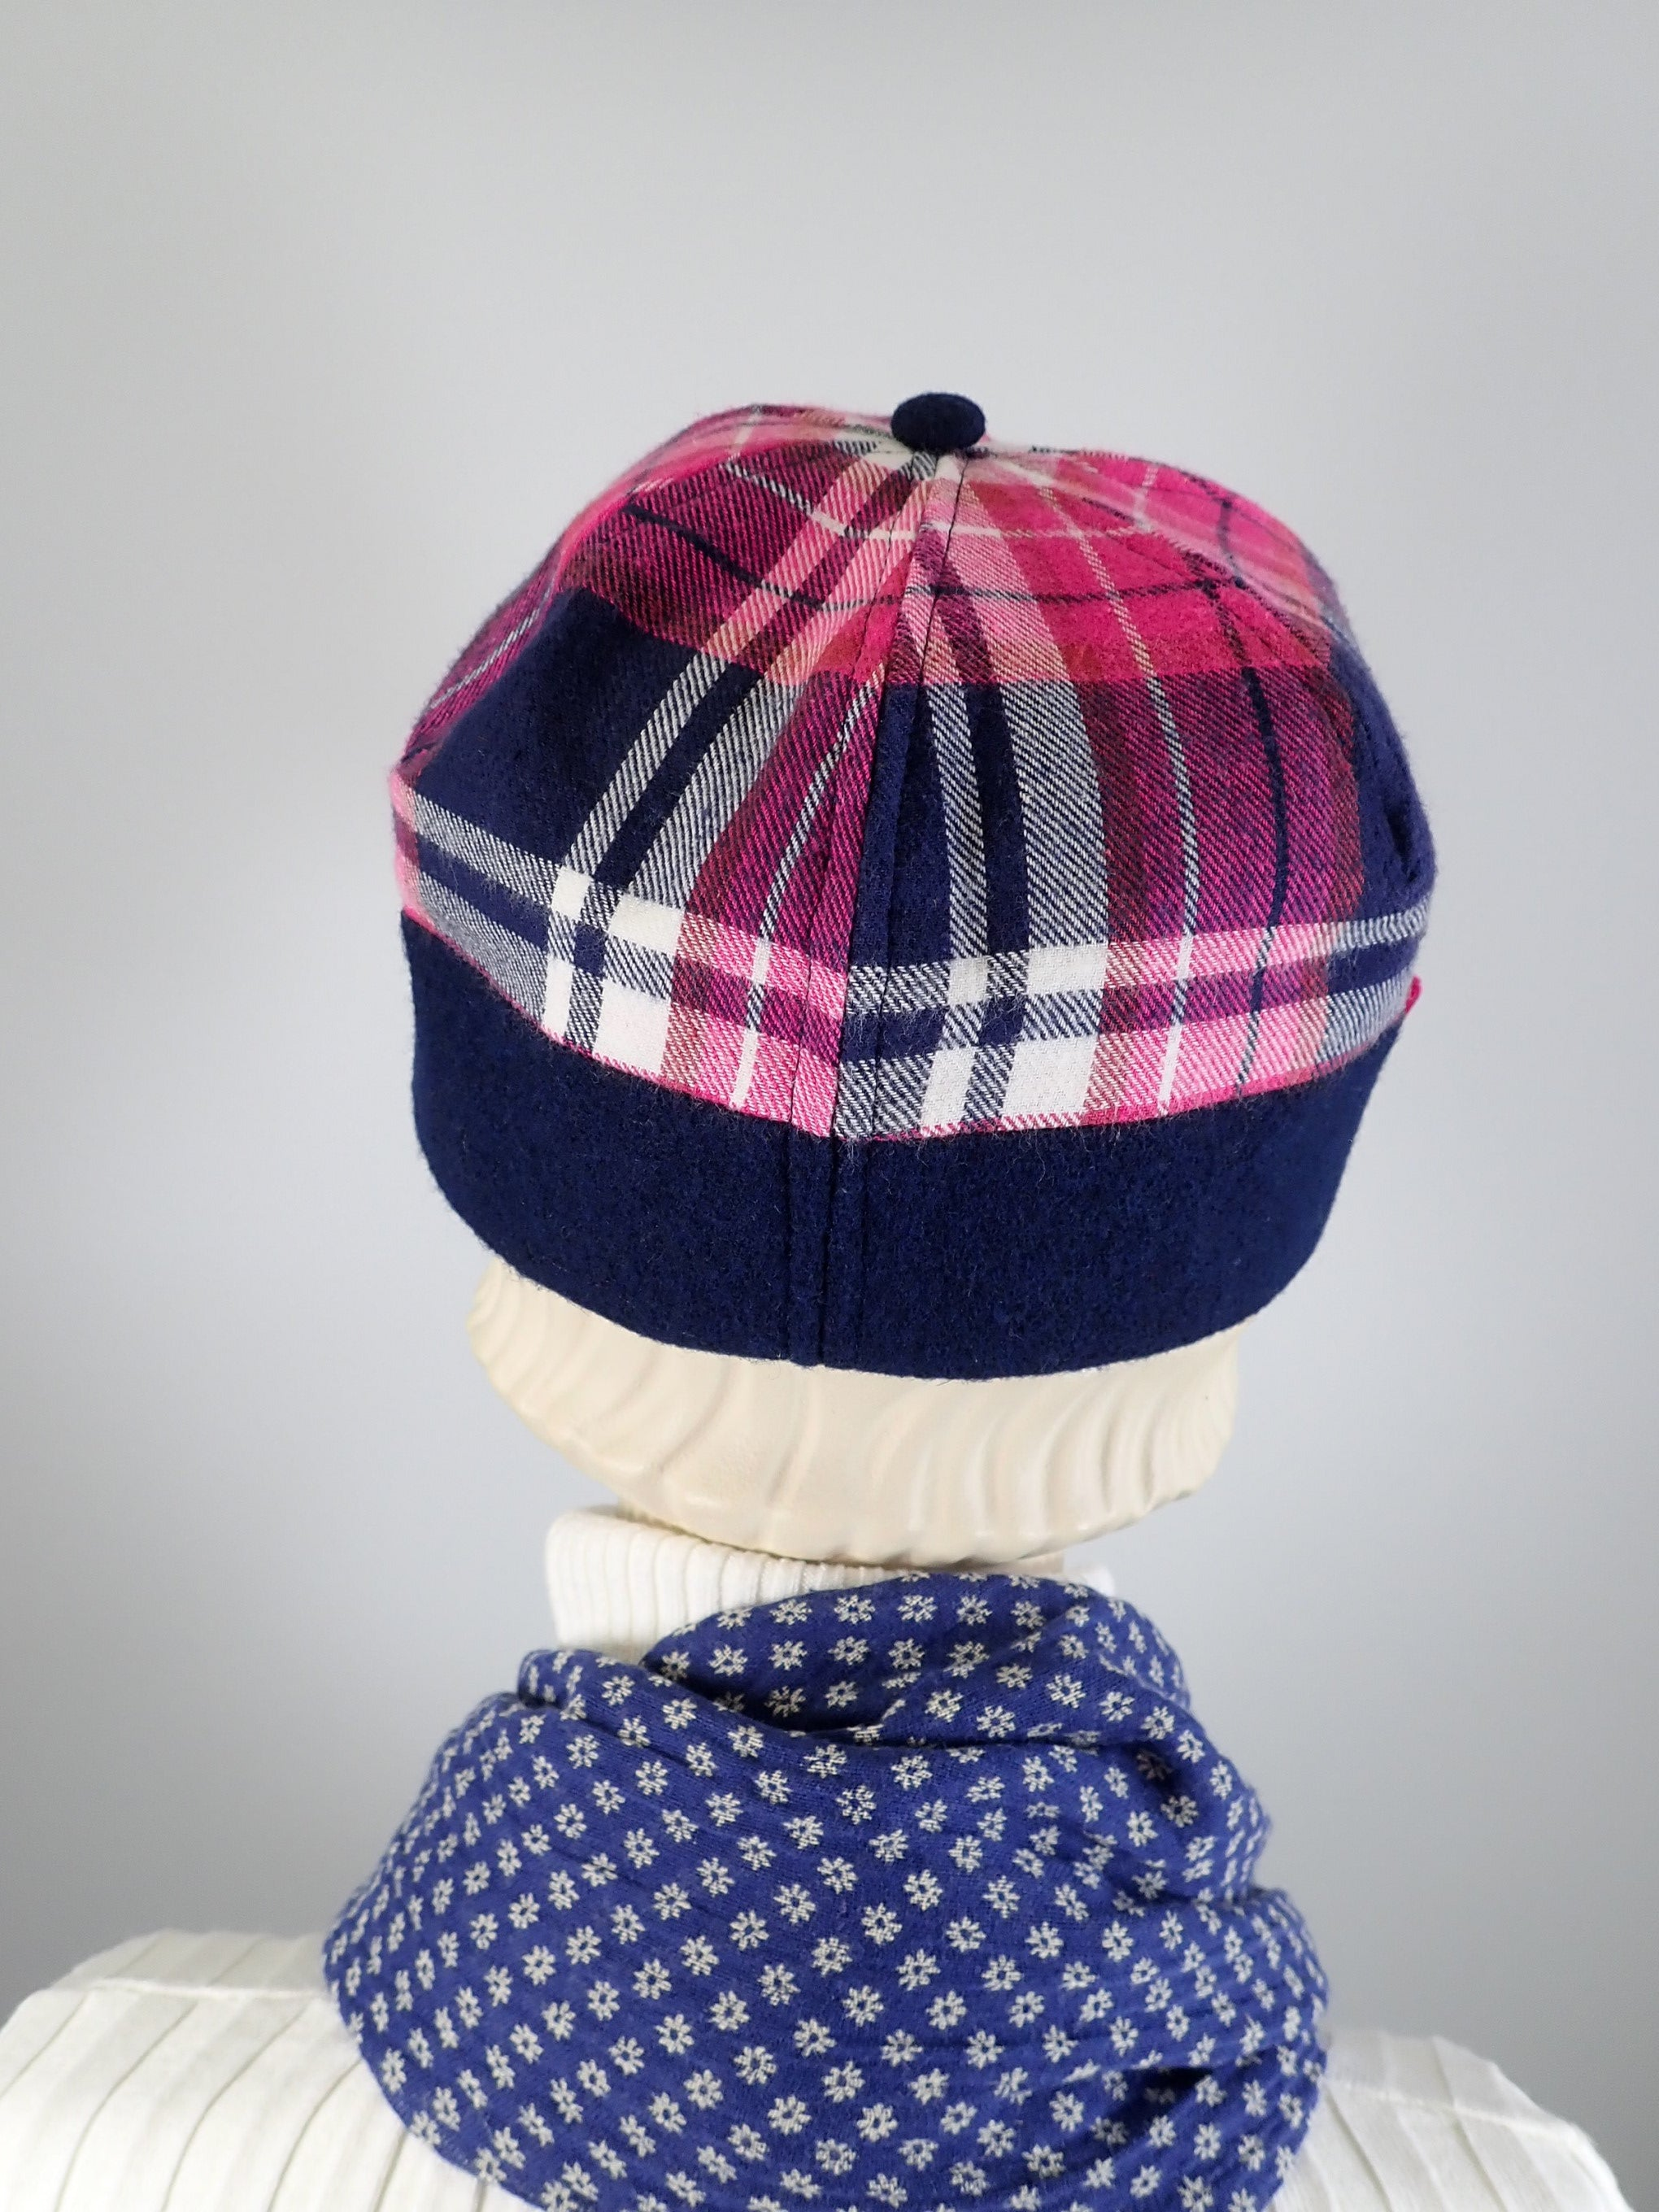 Women's winter hat pink and blue plaid newsboy baseball style. Casual comfy ladies hat. Stylish soft fabric hat.